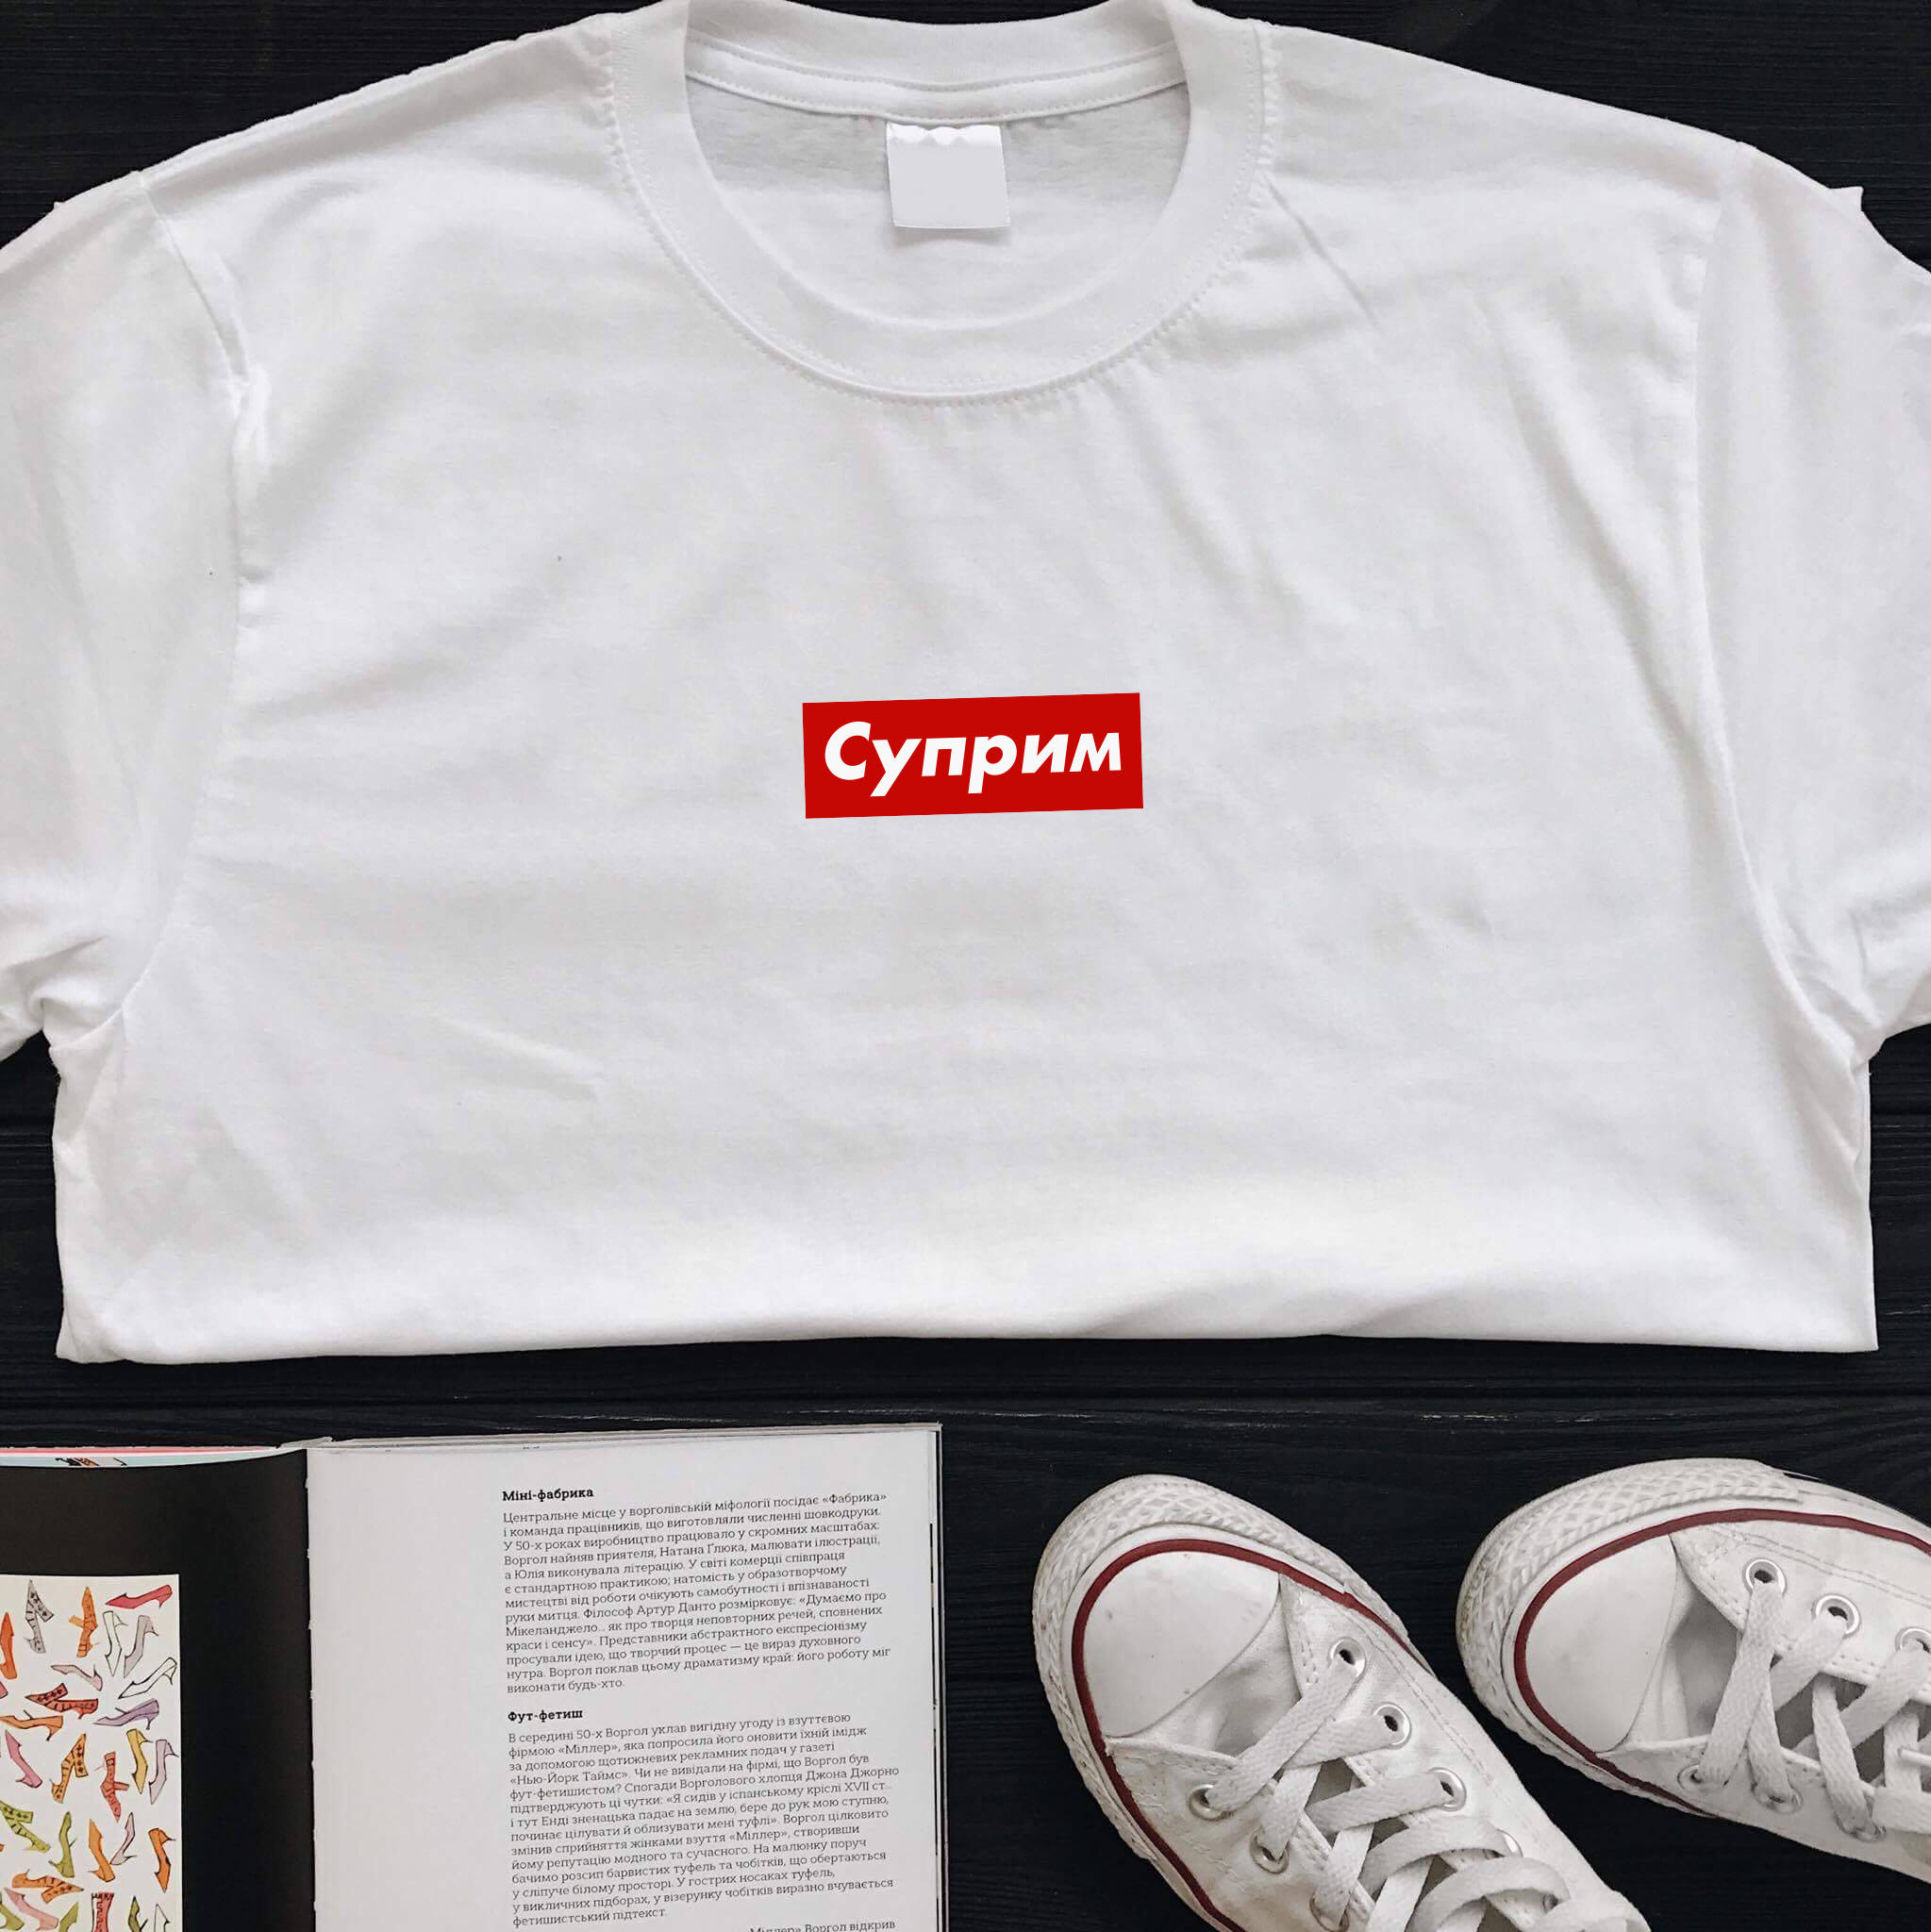 supreme t shirt price south africa